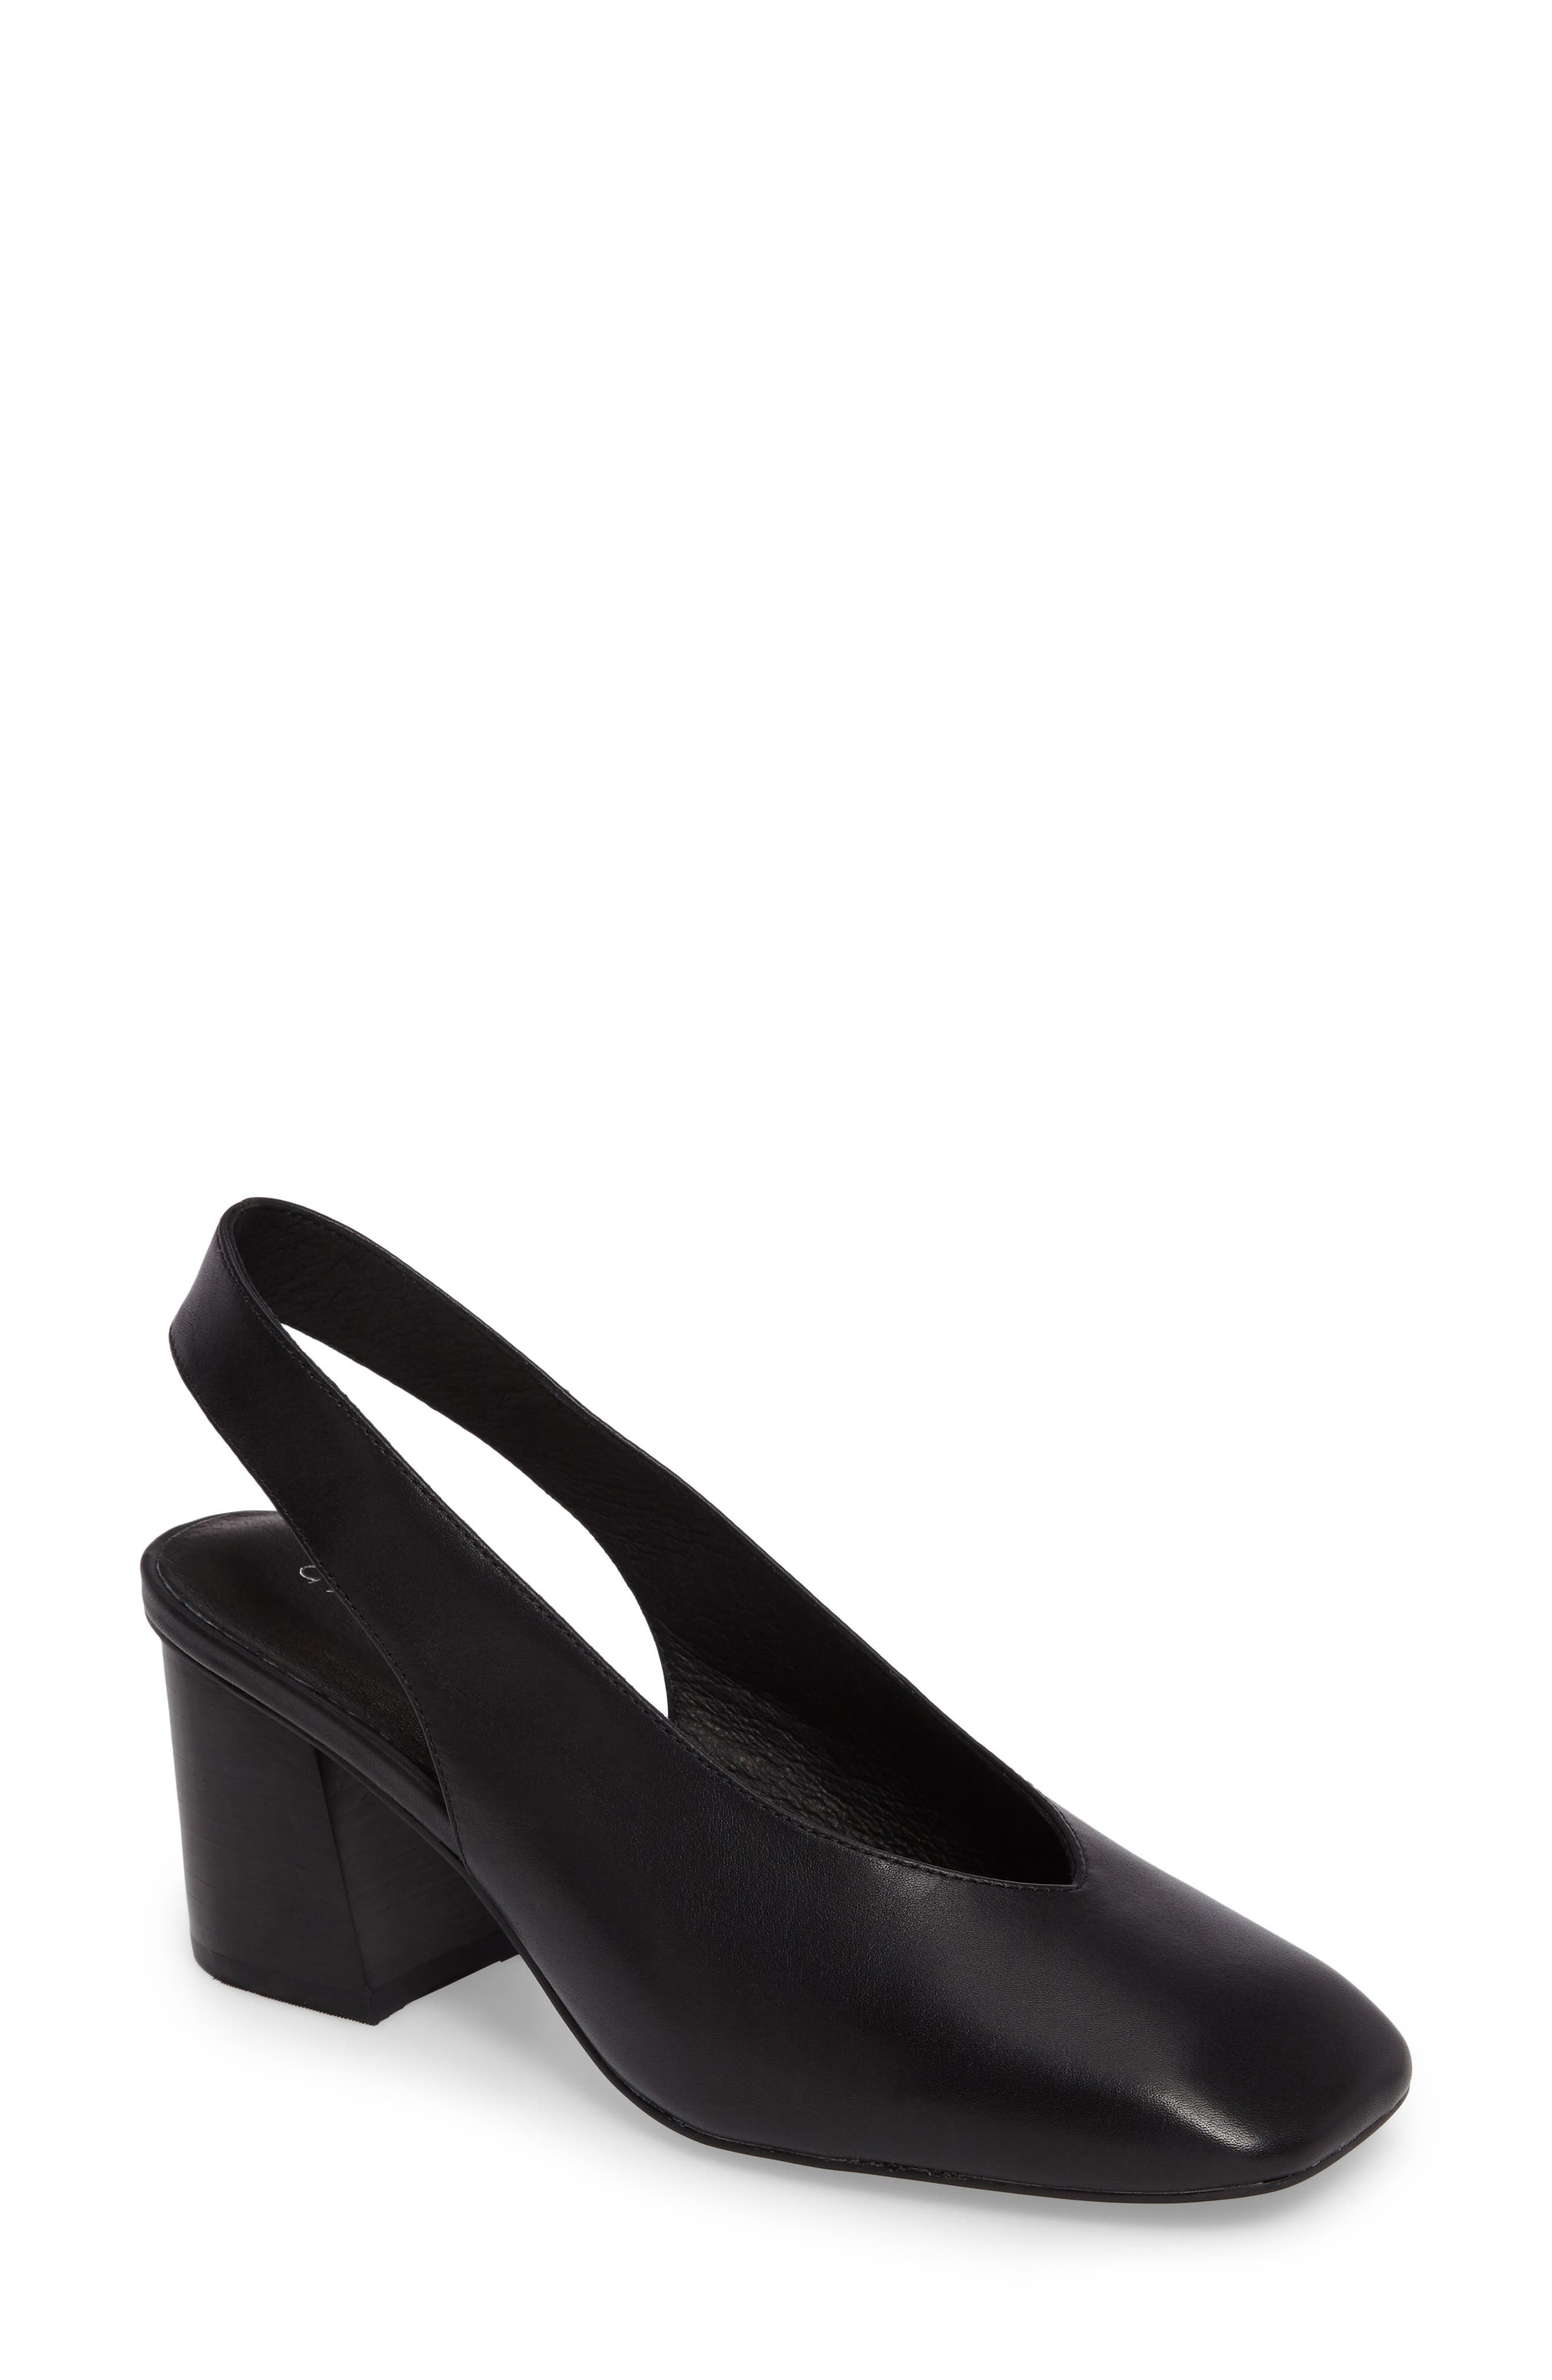 Sydney Square-Toe Slingback Pump,                         Main,                         color, 001